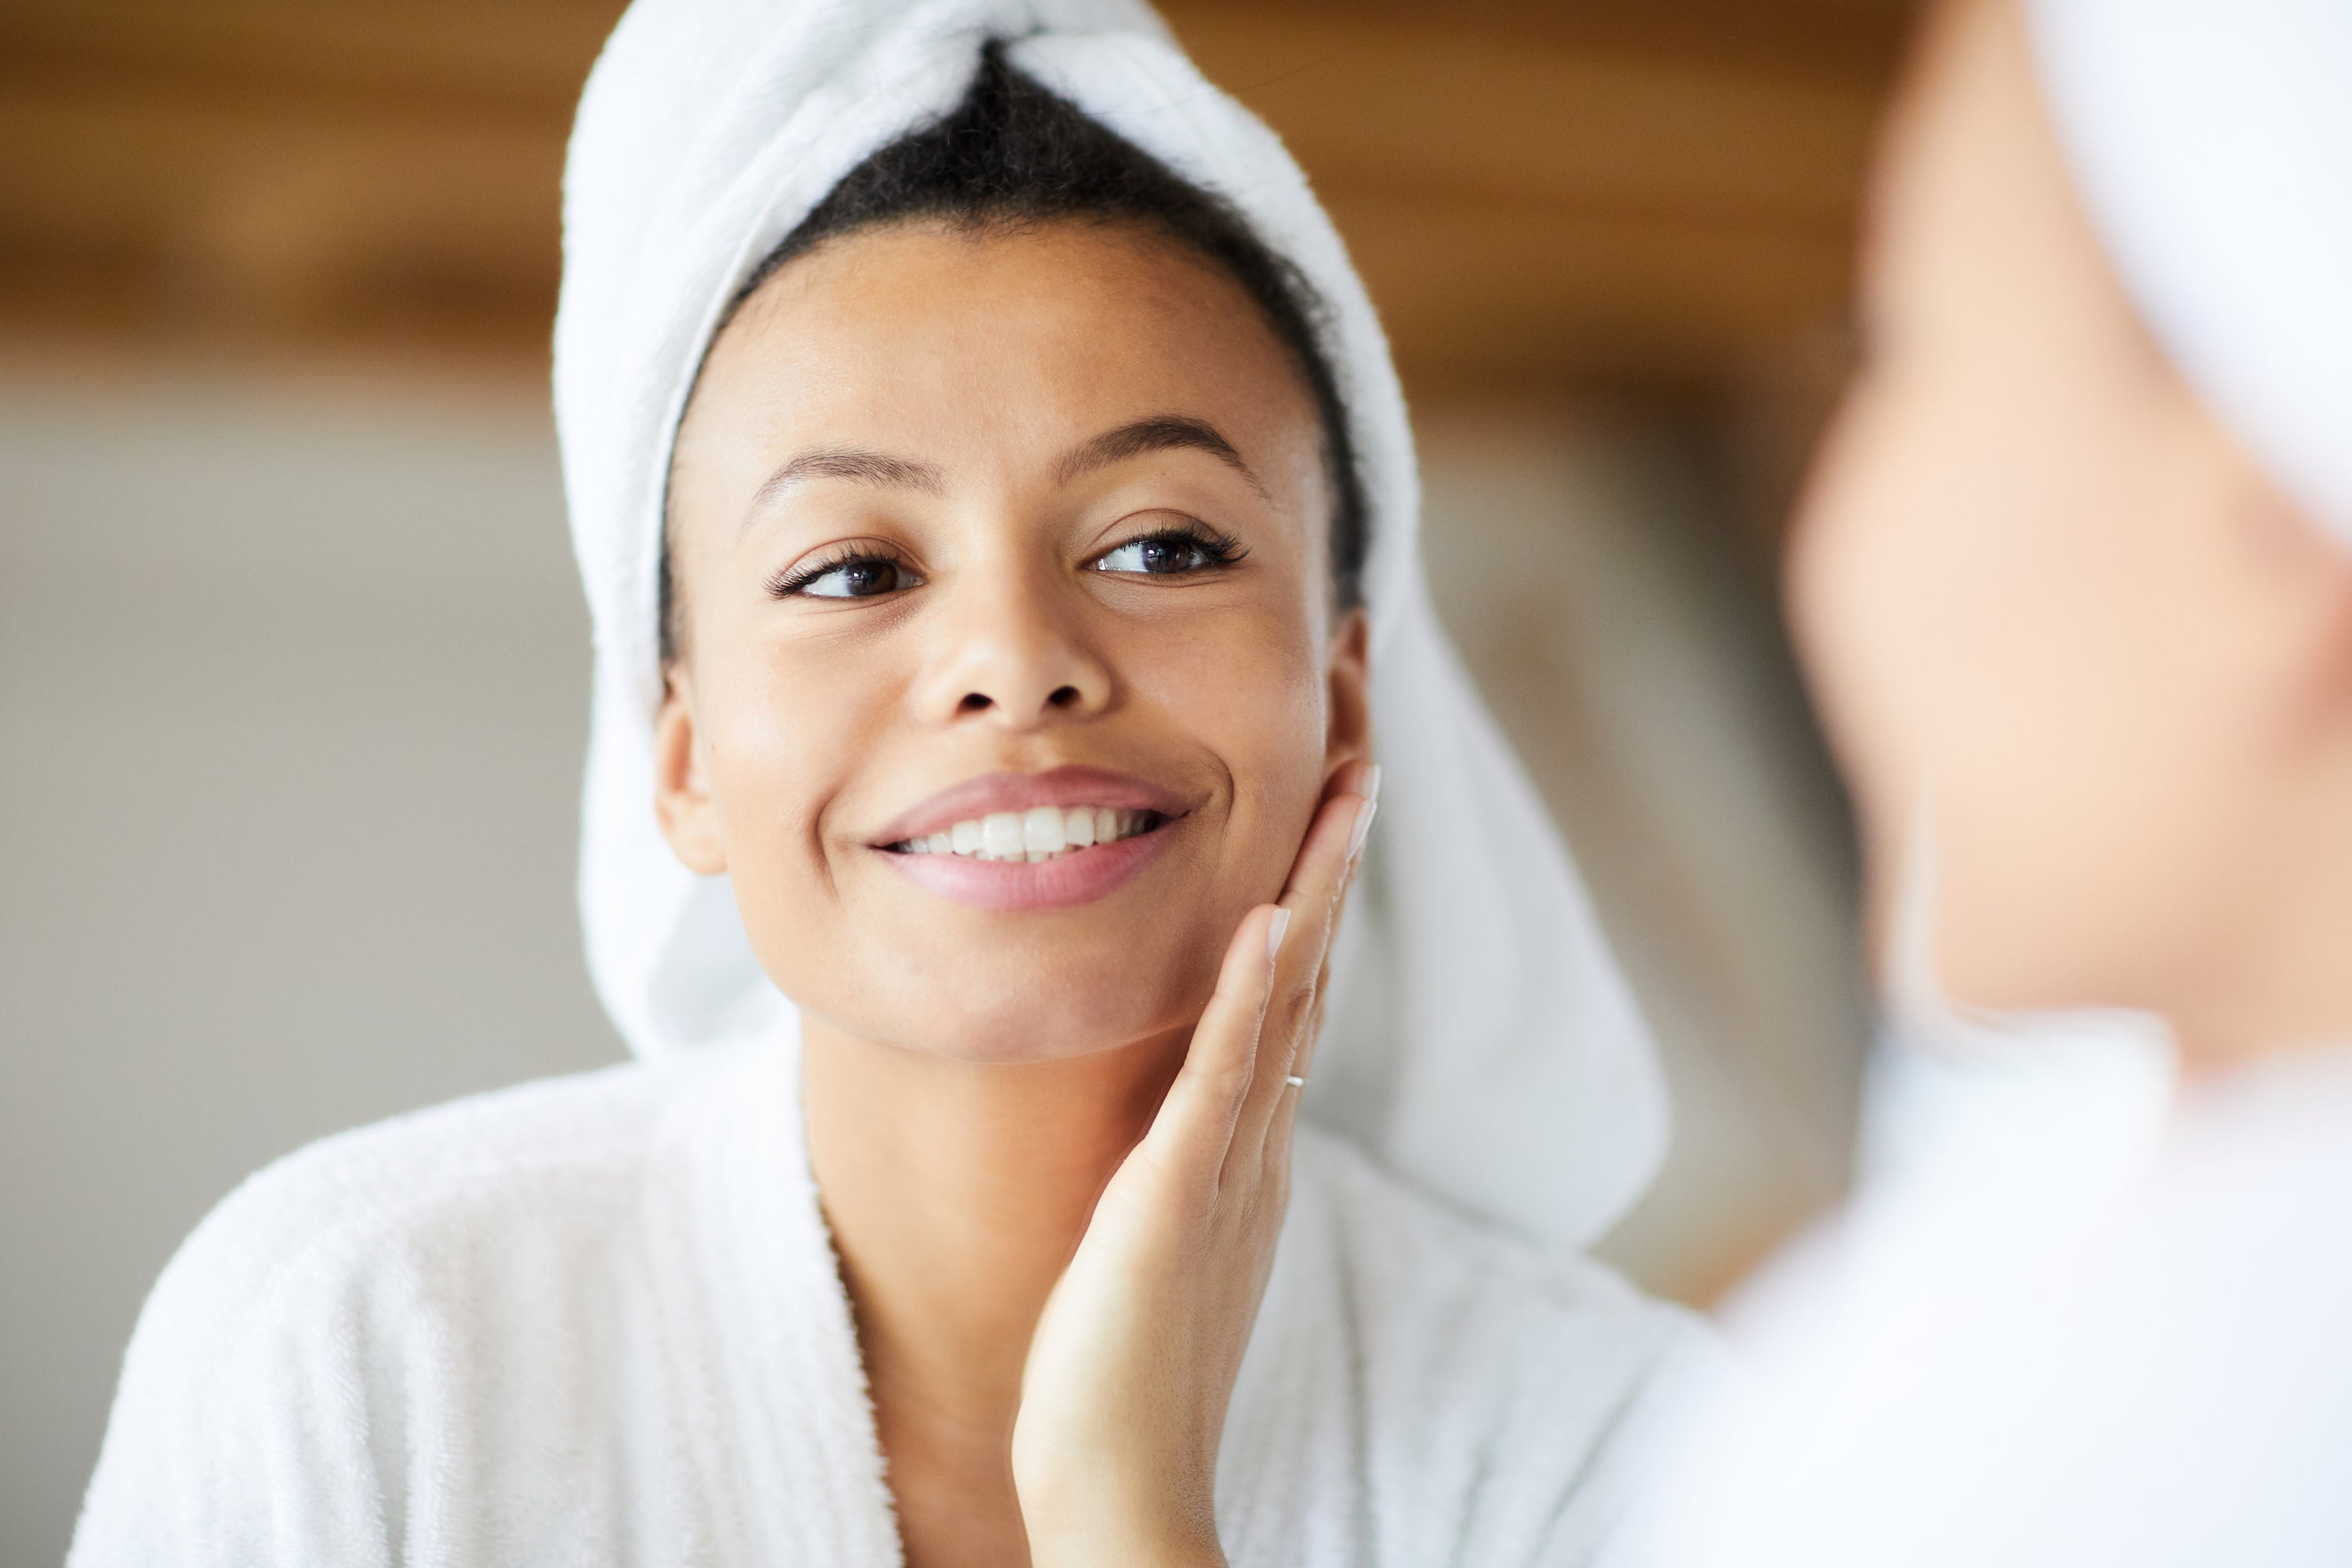 woman of color with clear skin touching cheek and looking in mirror with towel on head wearing bathrobe